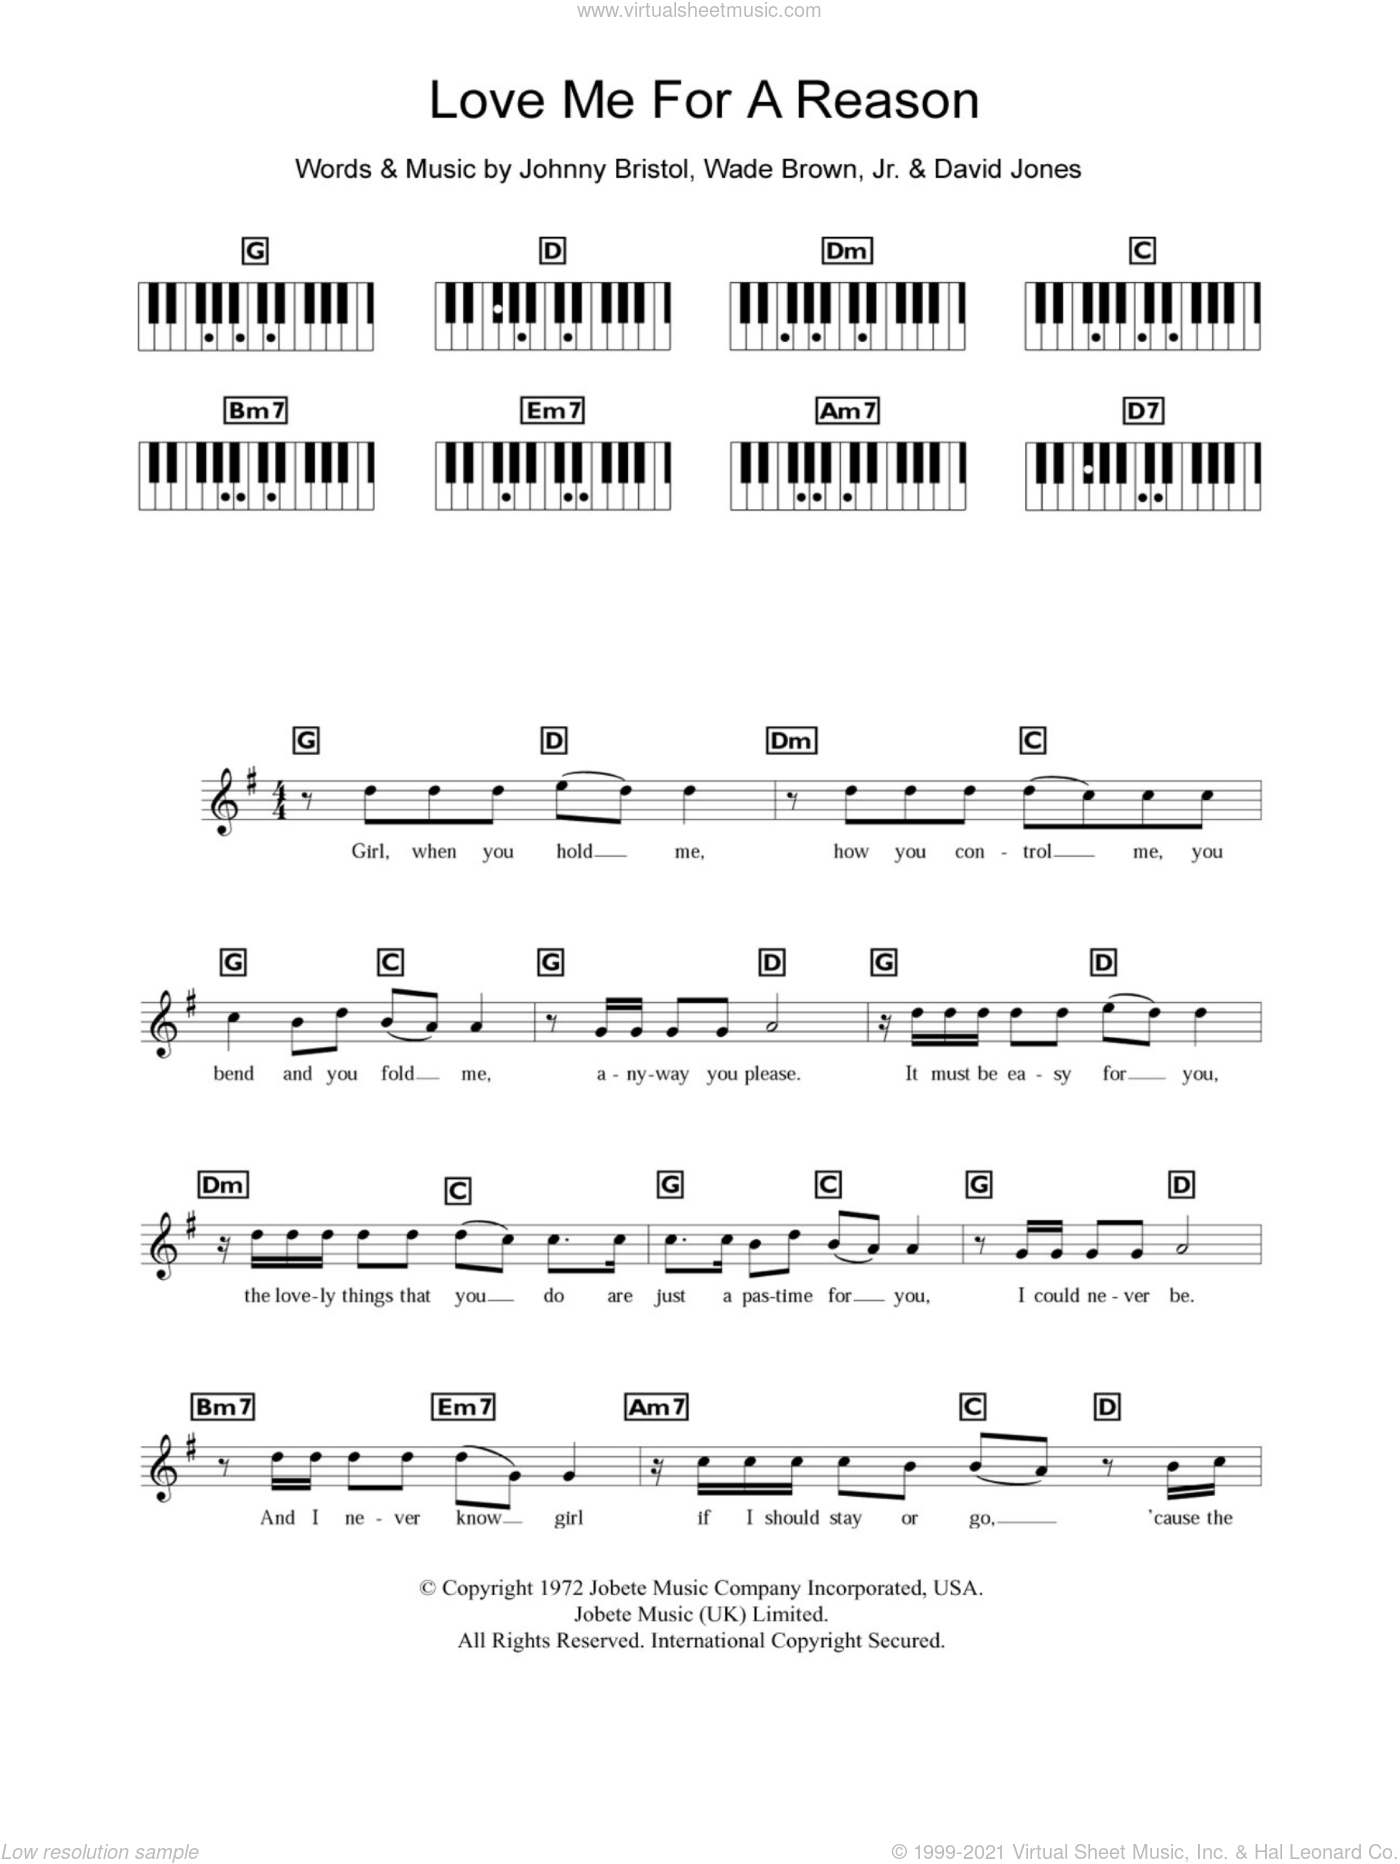 Love Me For A Reason sheet music for piano solo (chords, lyrics, melody) by Wade Brown